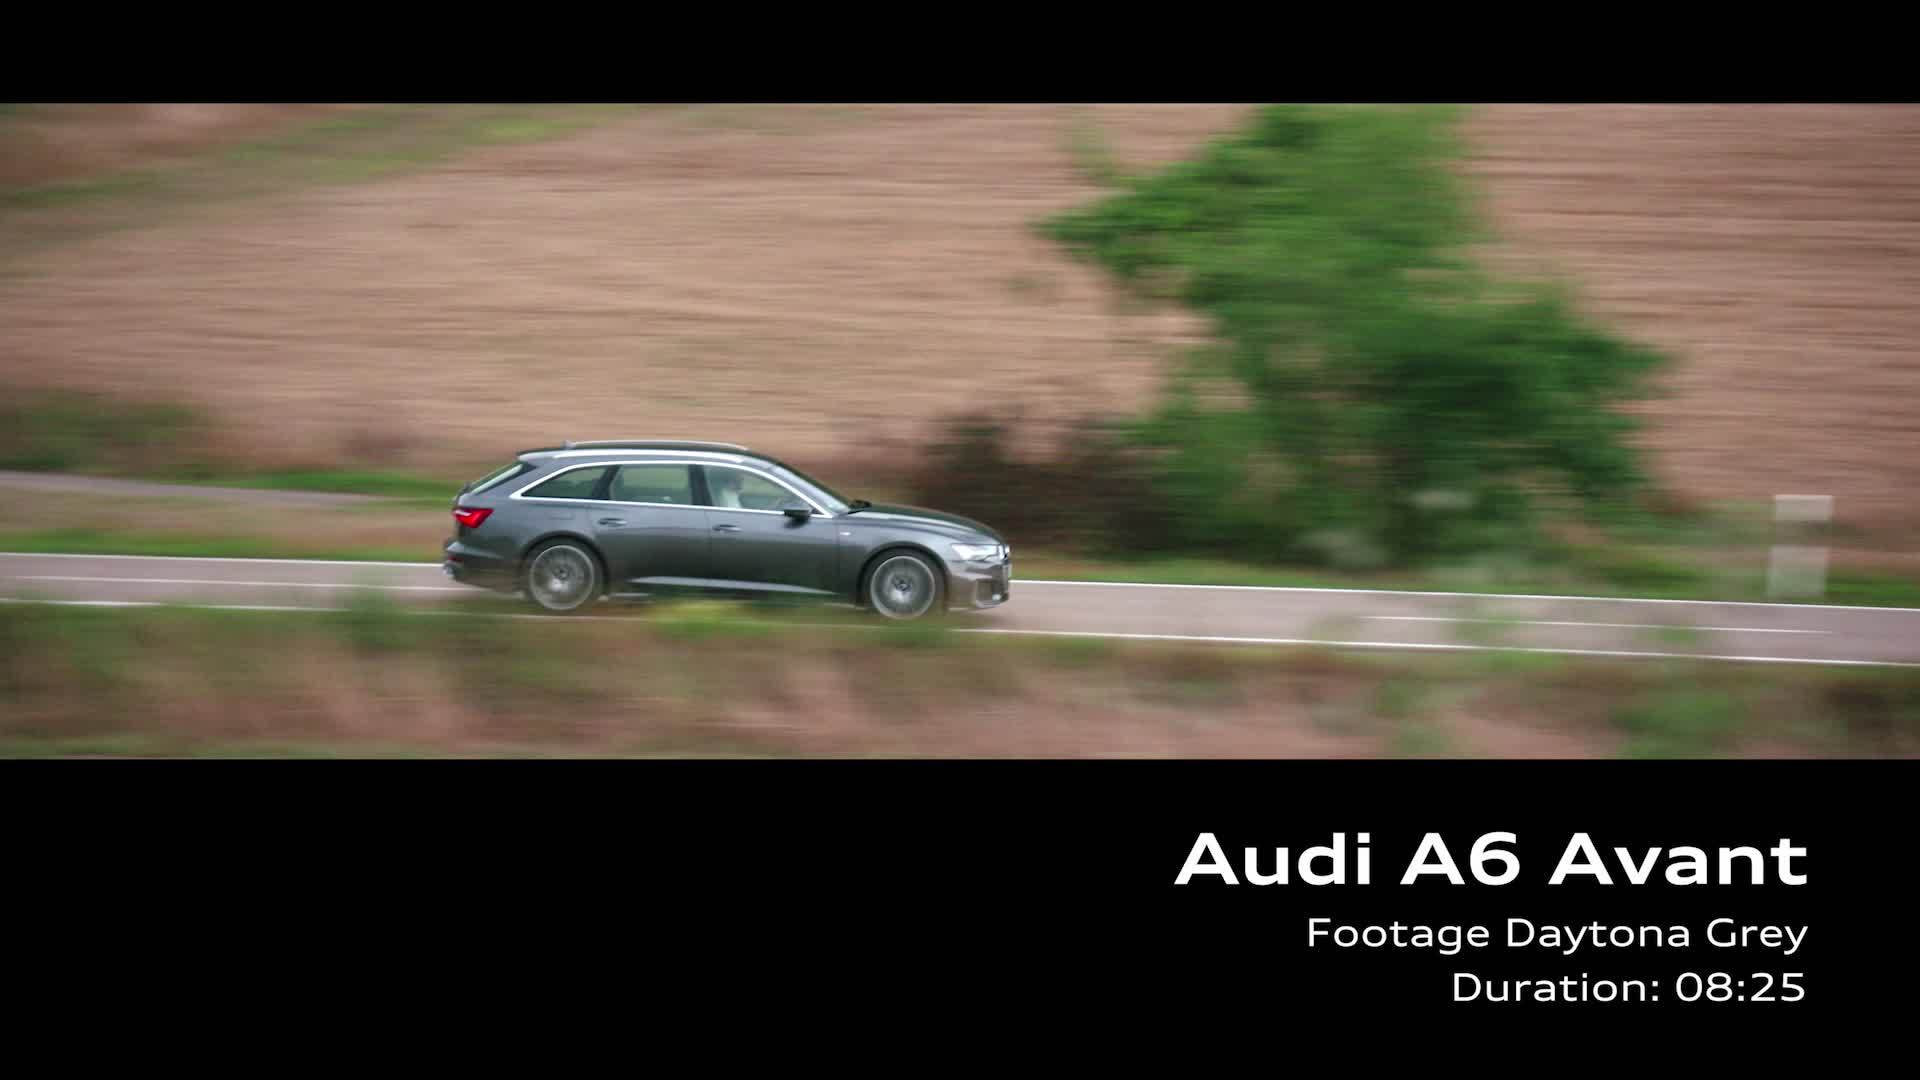 Audi A6 Avant – on Location Footage Daytona Grey